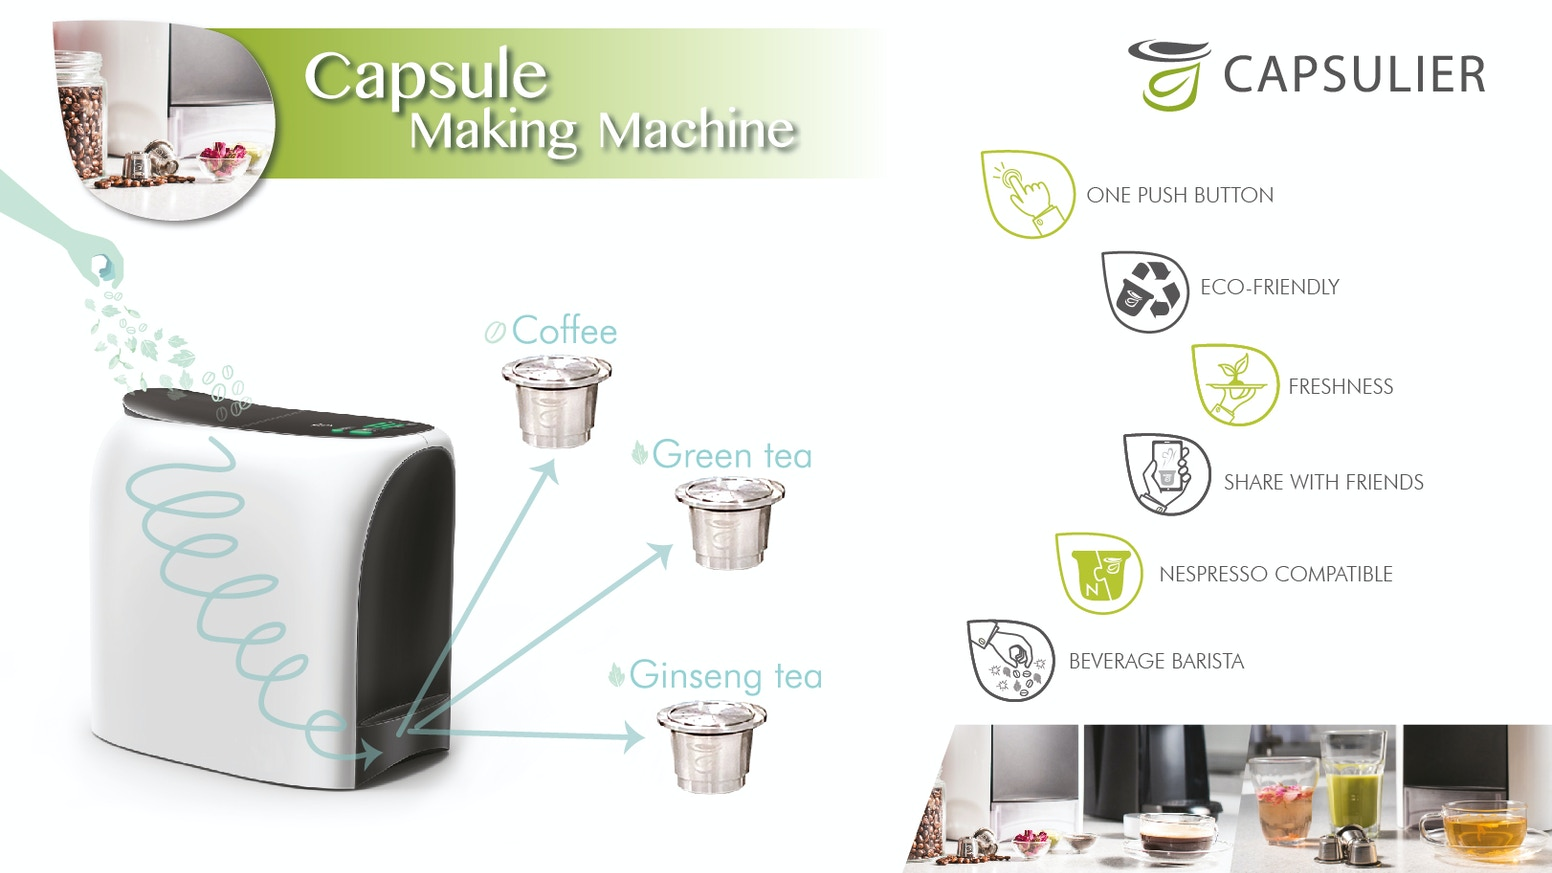 Capsulier: Fresh Nespresso coffee capsule making in a minute is the top crowdfunding project launched today. Capsulier: Fresh Nespresso coffee capsule making in a minute raised over $941573 from 156 backers. Other top projects include AMS Athlete Management Software, CharacTable:RPG Board for Character Sheet Dice, Notes&Tablet, Ember Rising: S. D. Smith's Green Ember Series Forges Ahead...